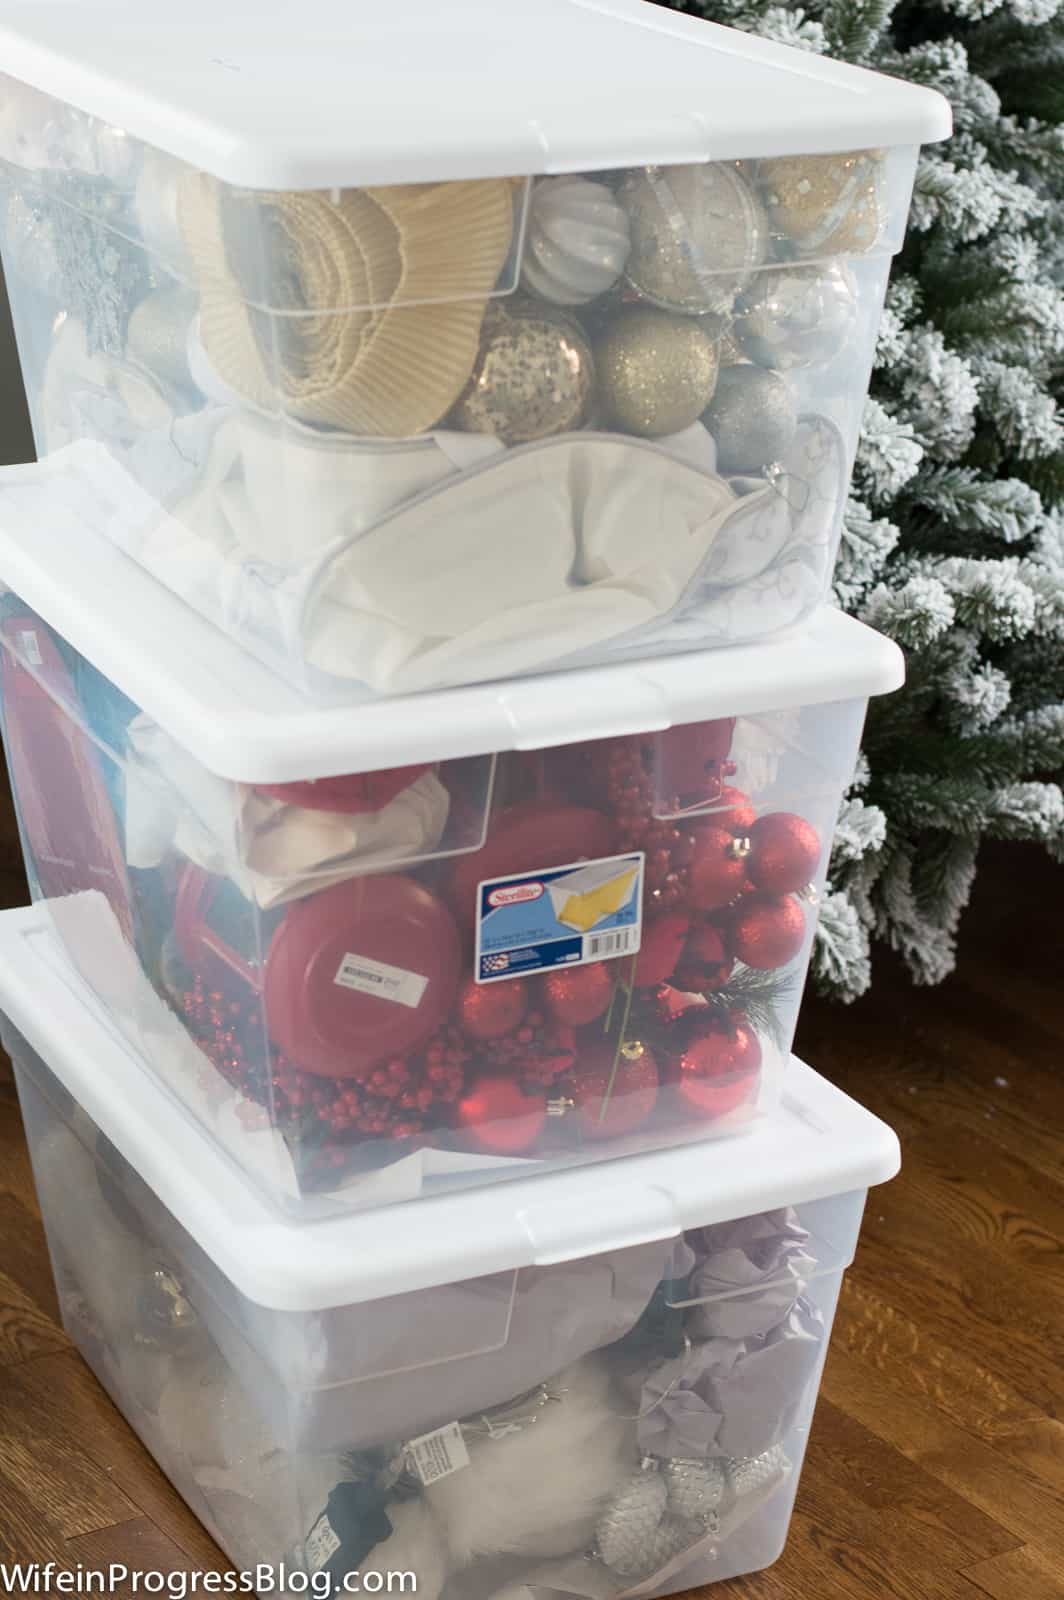 Organize Christmas ornaments by color in clear tote bins